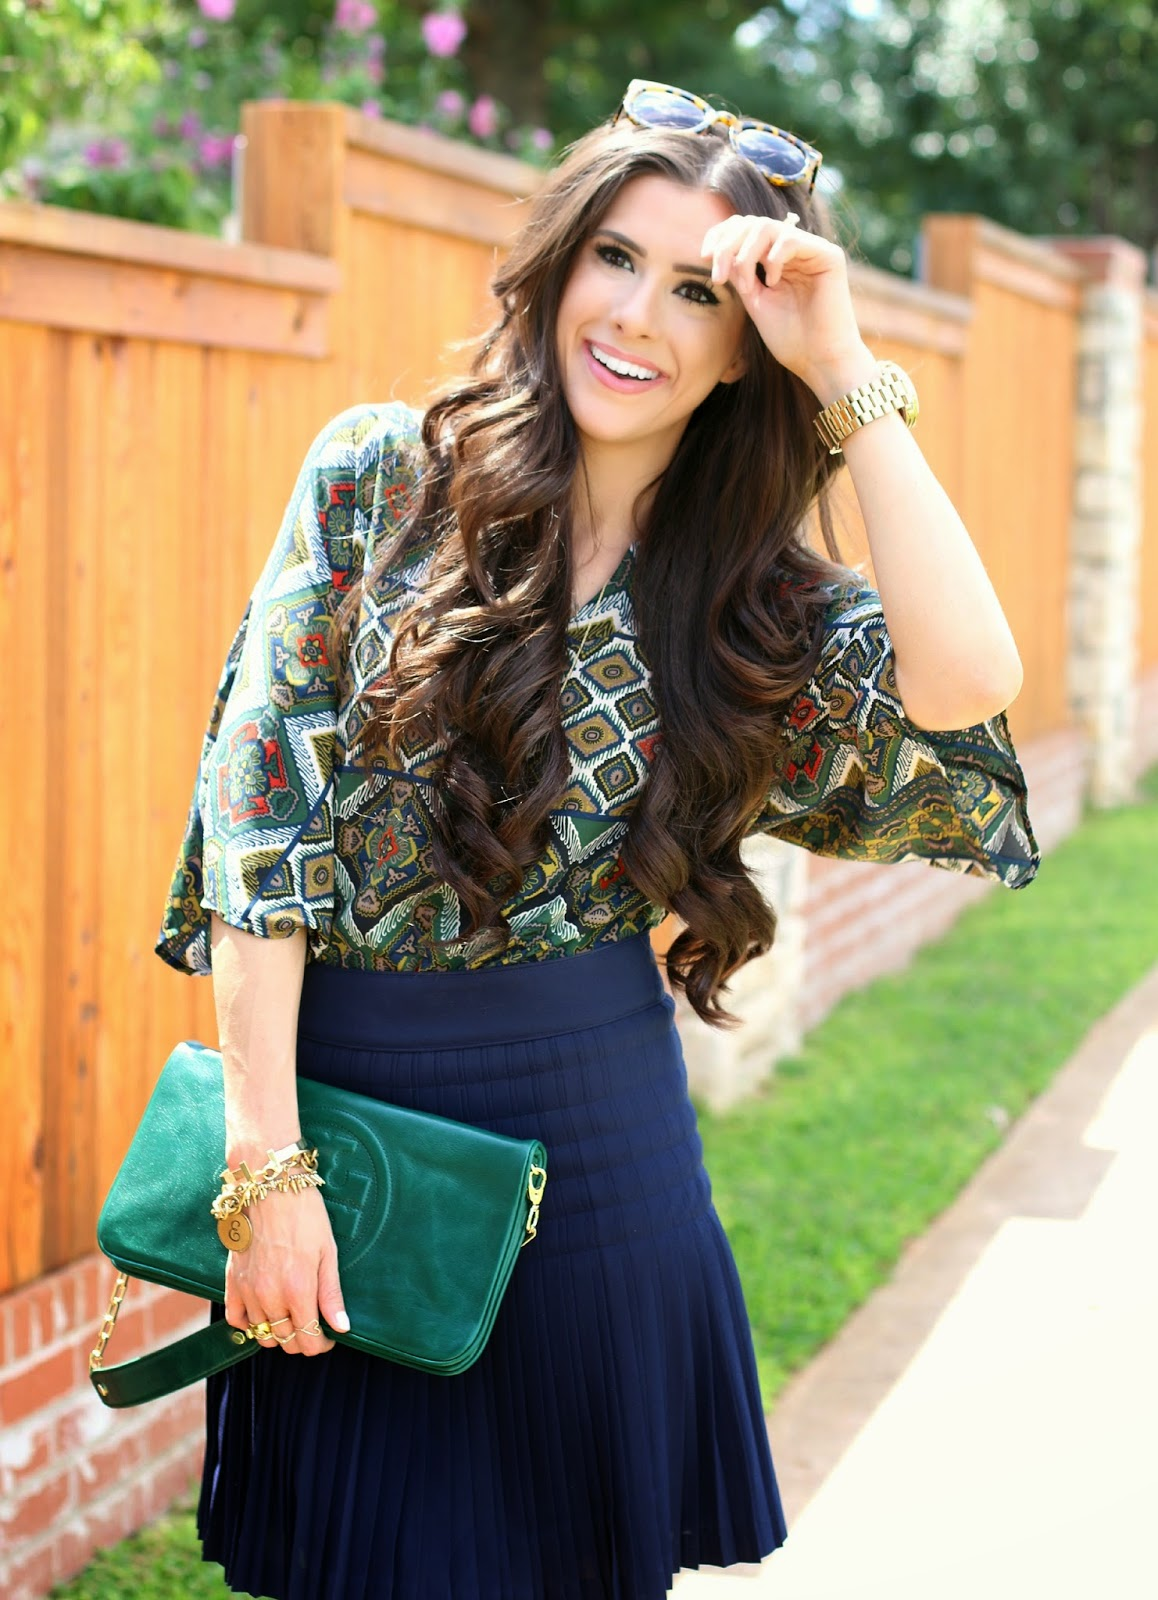 emily gemma hair, sweetest thing hair, tory burch clutch, karen walker super duper, jcrew skirt, jcrew navy skirt, booties, sole society booties, how to style booties, what to wear with booties, sole society booties, pinterest fall fashion, pinterest fall fashion 2014